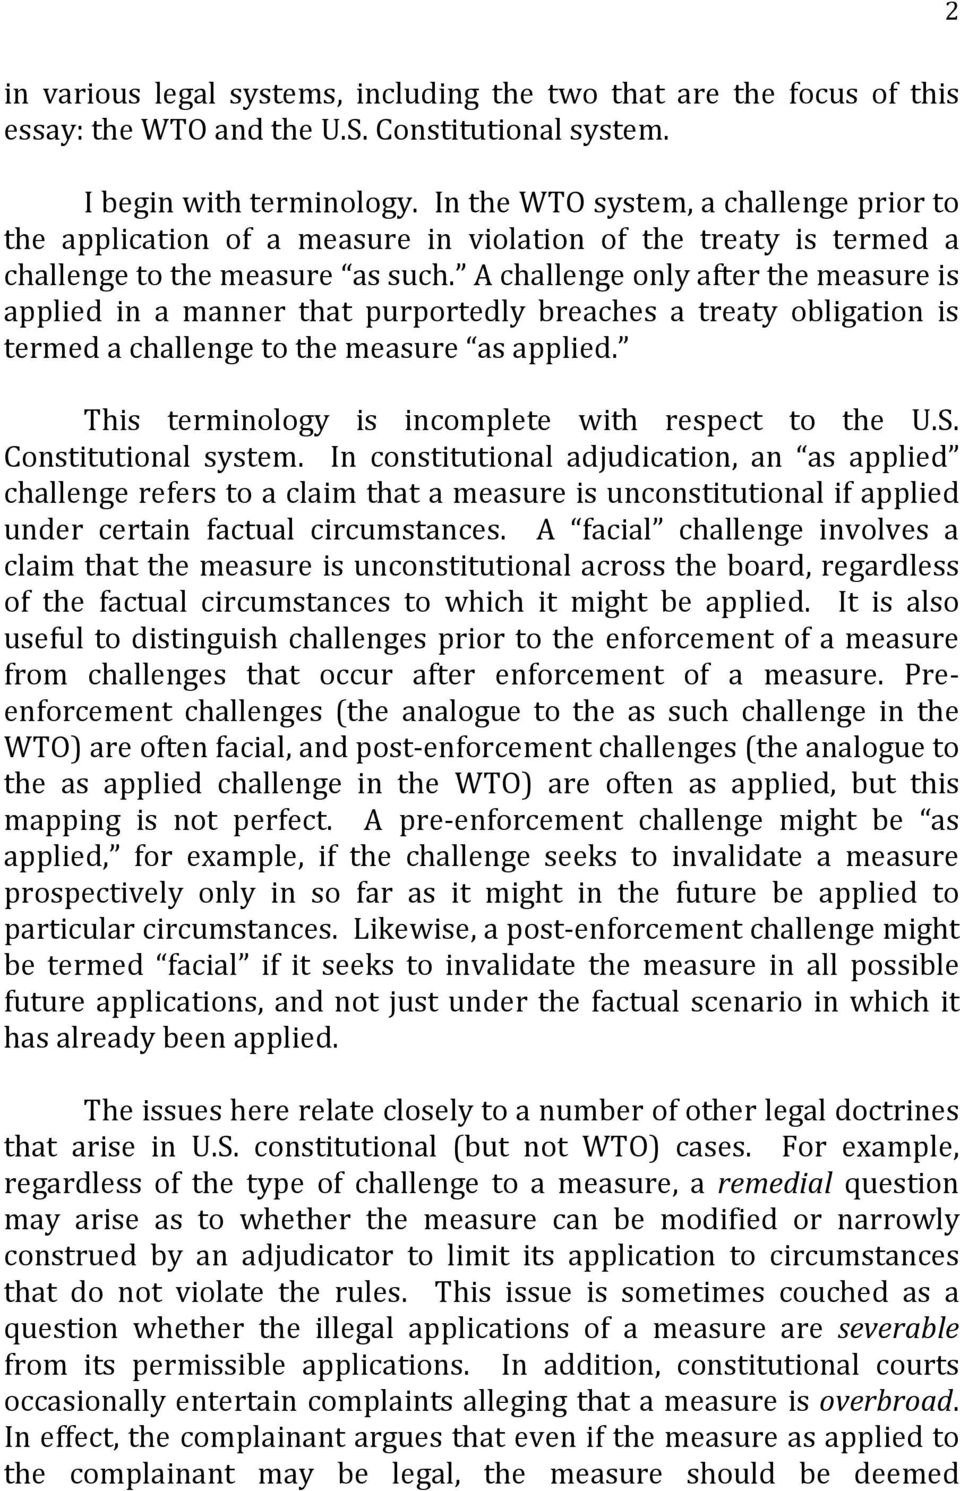 A challenge only after the measure is applied in a manner that purportedly breaches a treaty obligation is termed a challenge to the measure as applied.